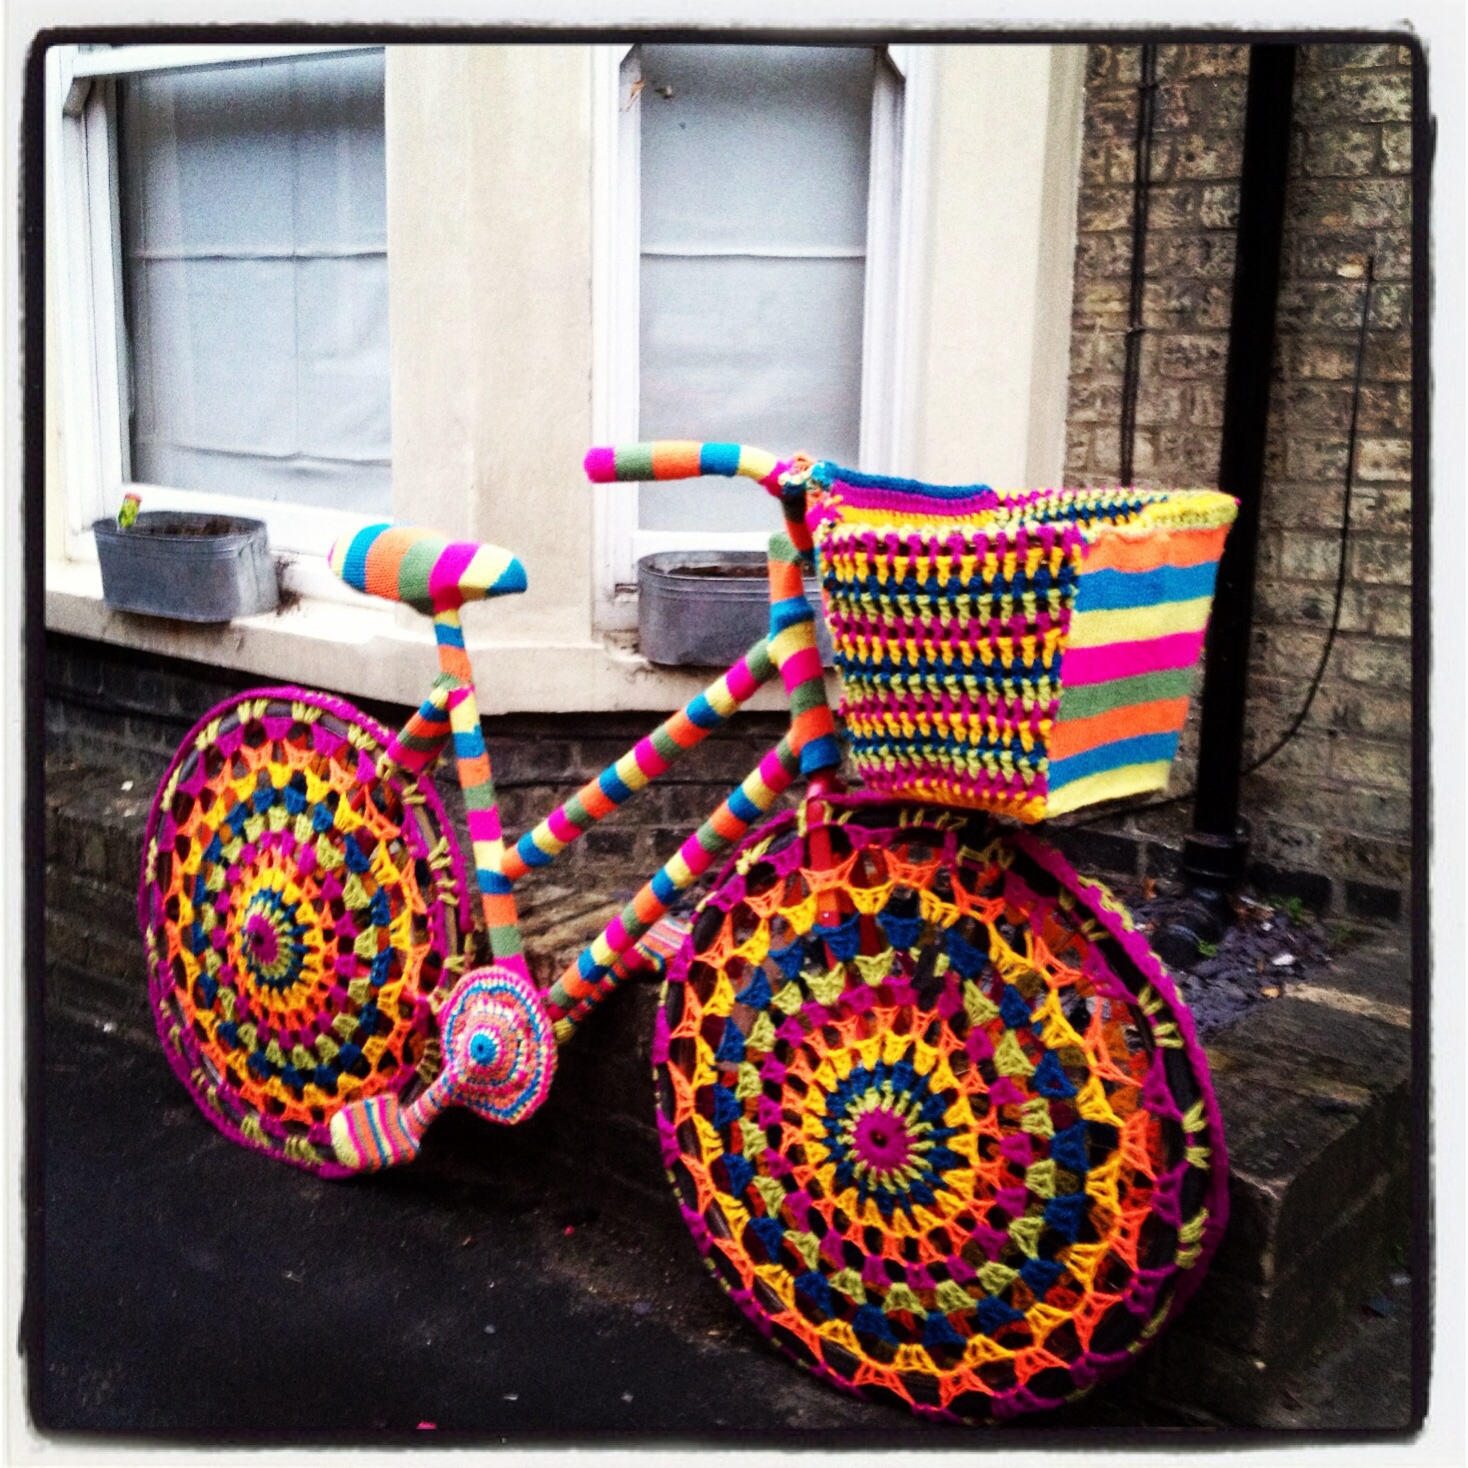 They Yarn Bombed a Bike for Charity!